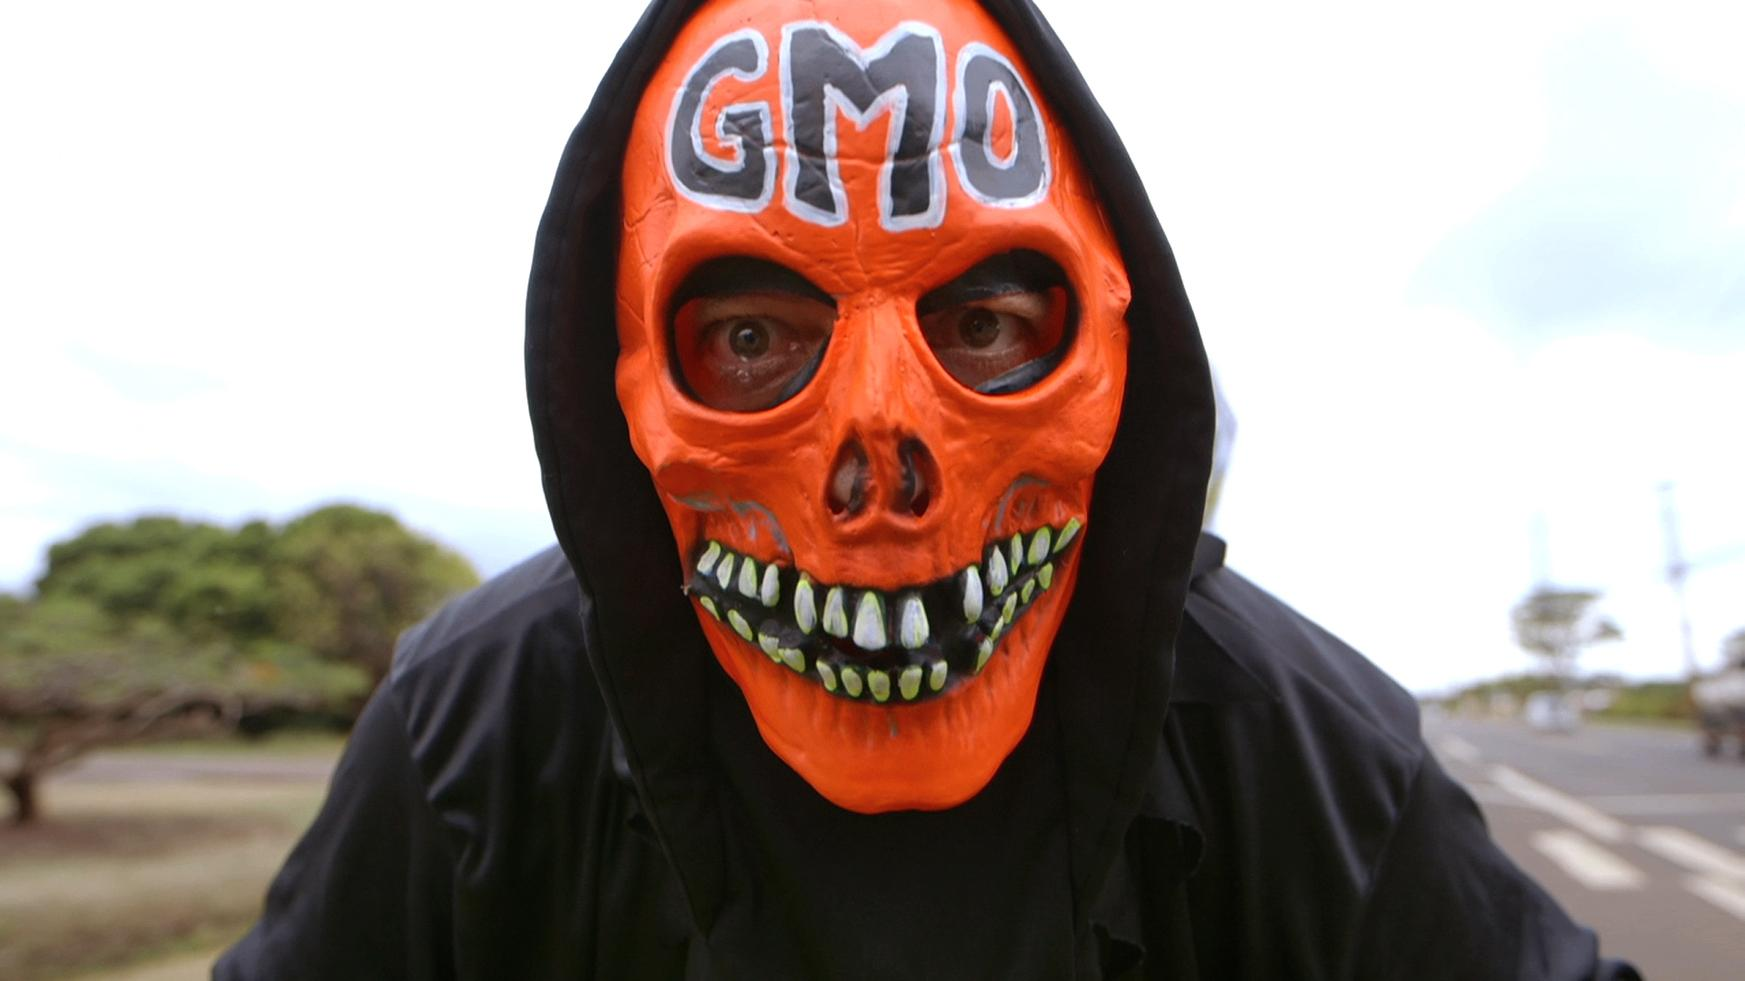 This Documentary Wants to Teach People About GMOs, But Experts Call It Propaganda (MUNCHIES, JUN 30 2017)